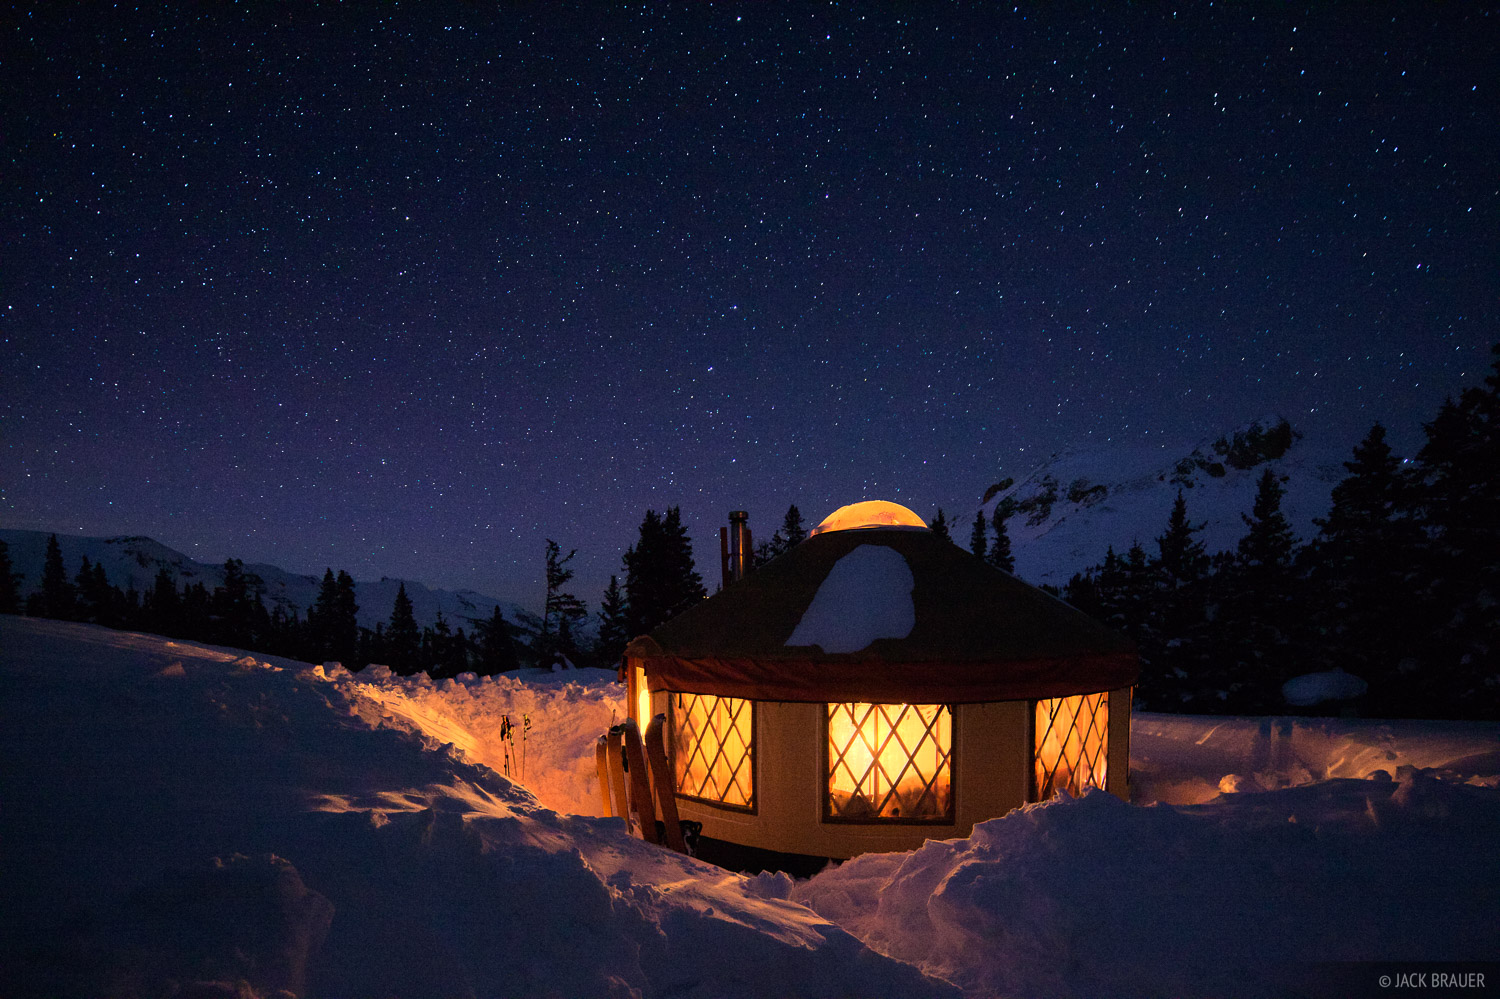 A cozy backcountry yurt in the snow on a winter night in March.